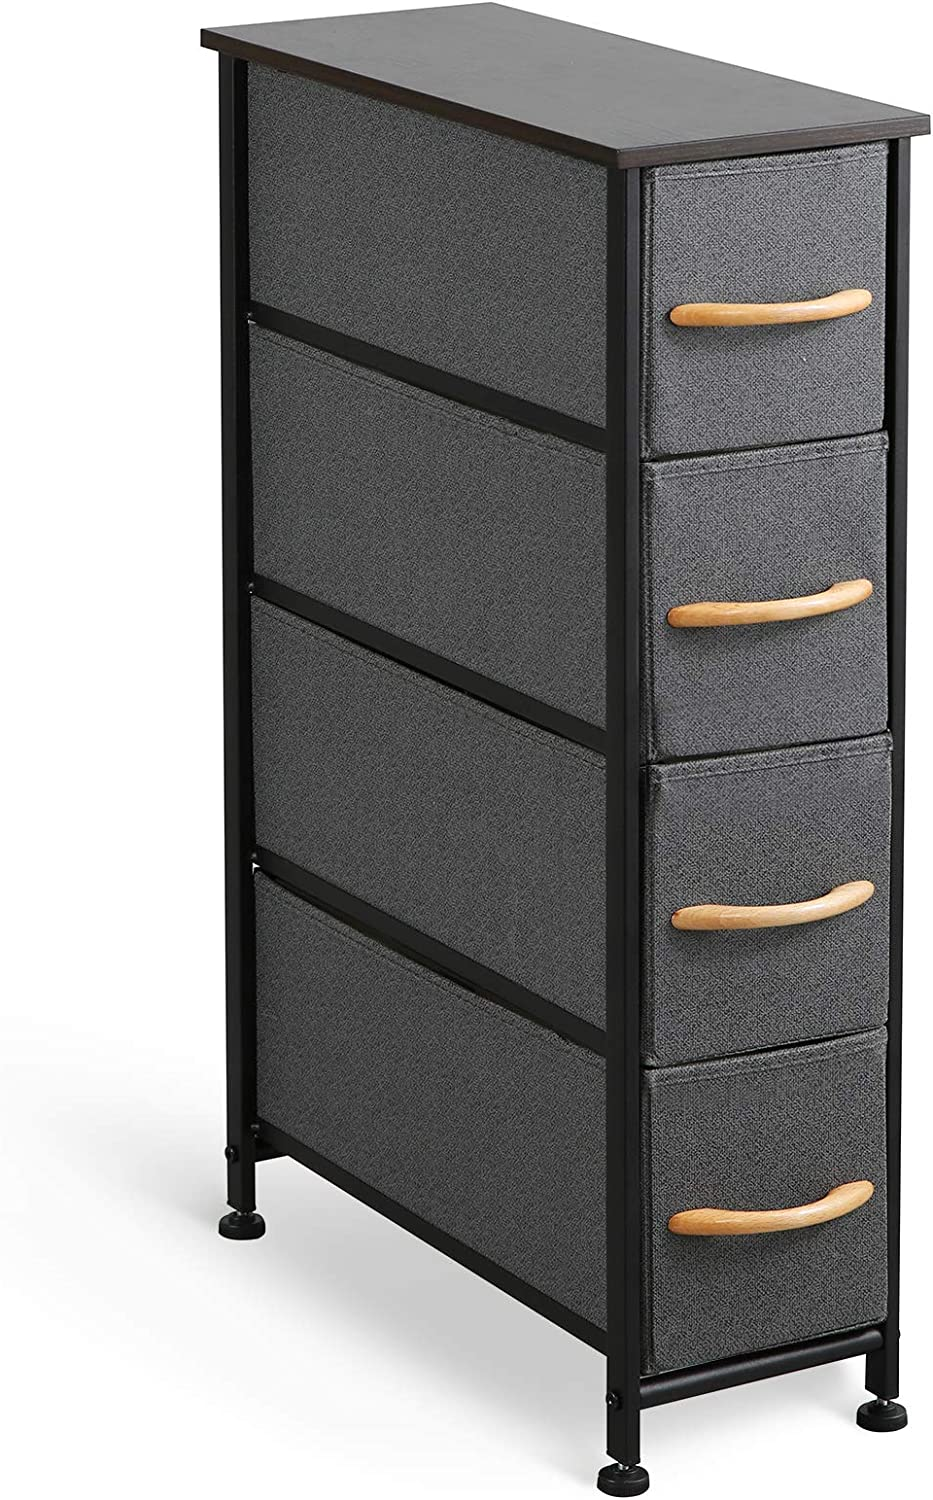 McNeil 4 Drawers Fabric Dresser Narrow Vertical Storage Tower Organizer Unit for Bedroom Office Laundry Closet Entryway Hallway Nursery Room, Black